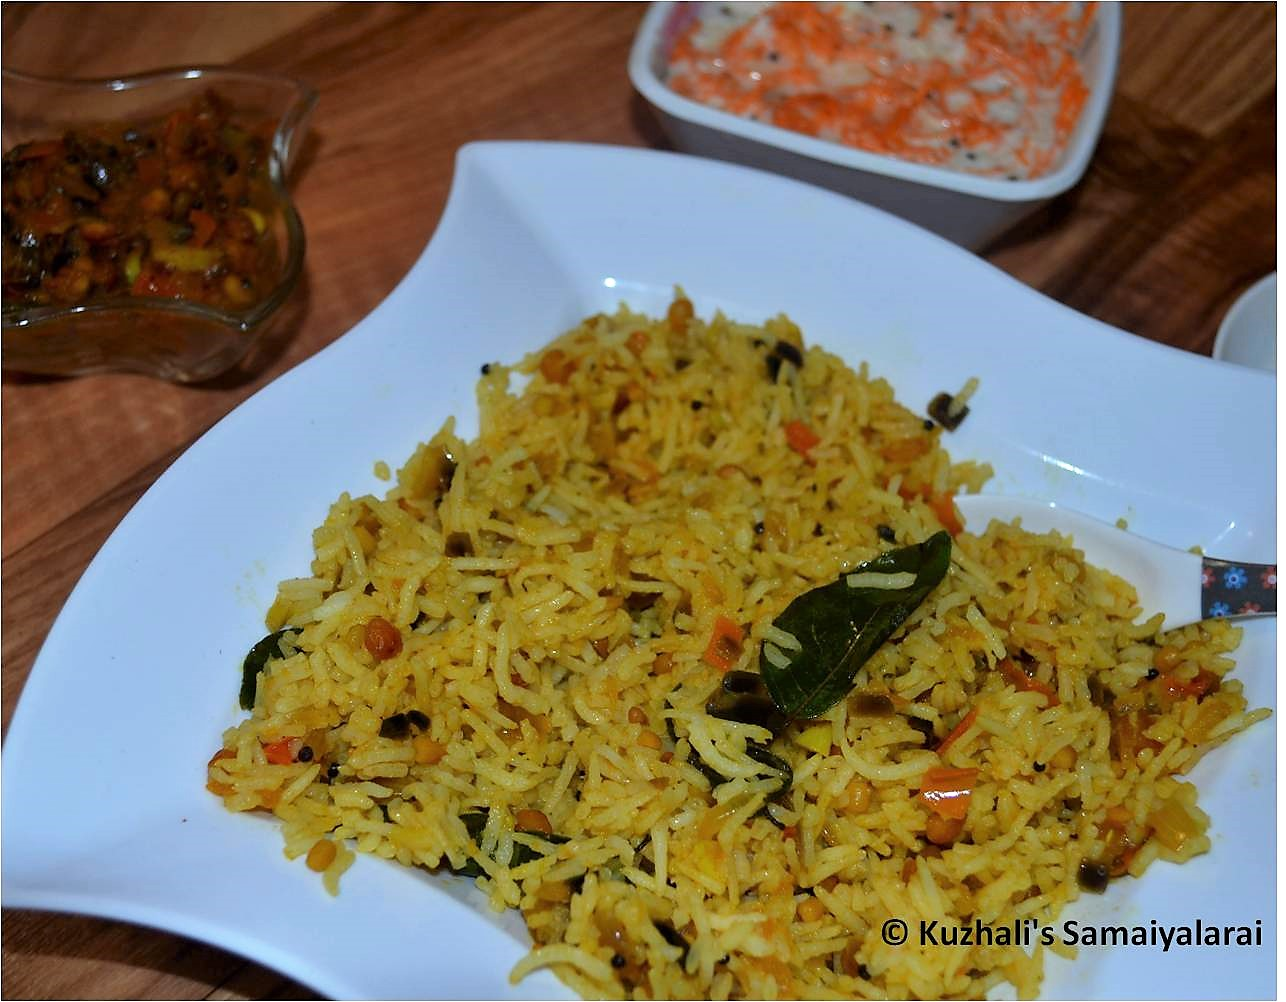 http://www.kuzhalisamaiyalarai.in/2017/12/tomato-rice-south-indian-tomato.html